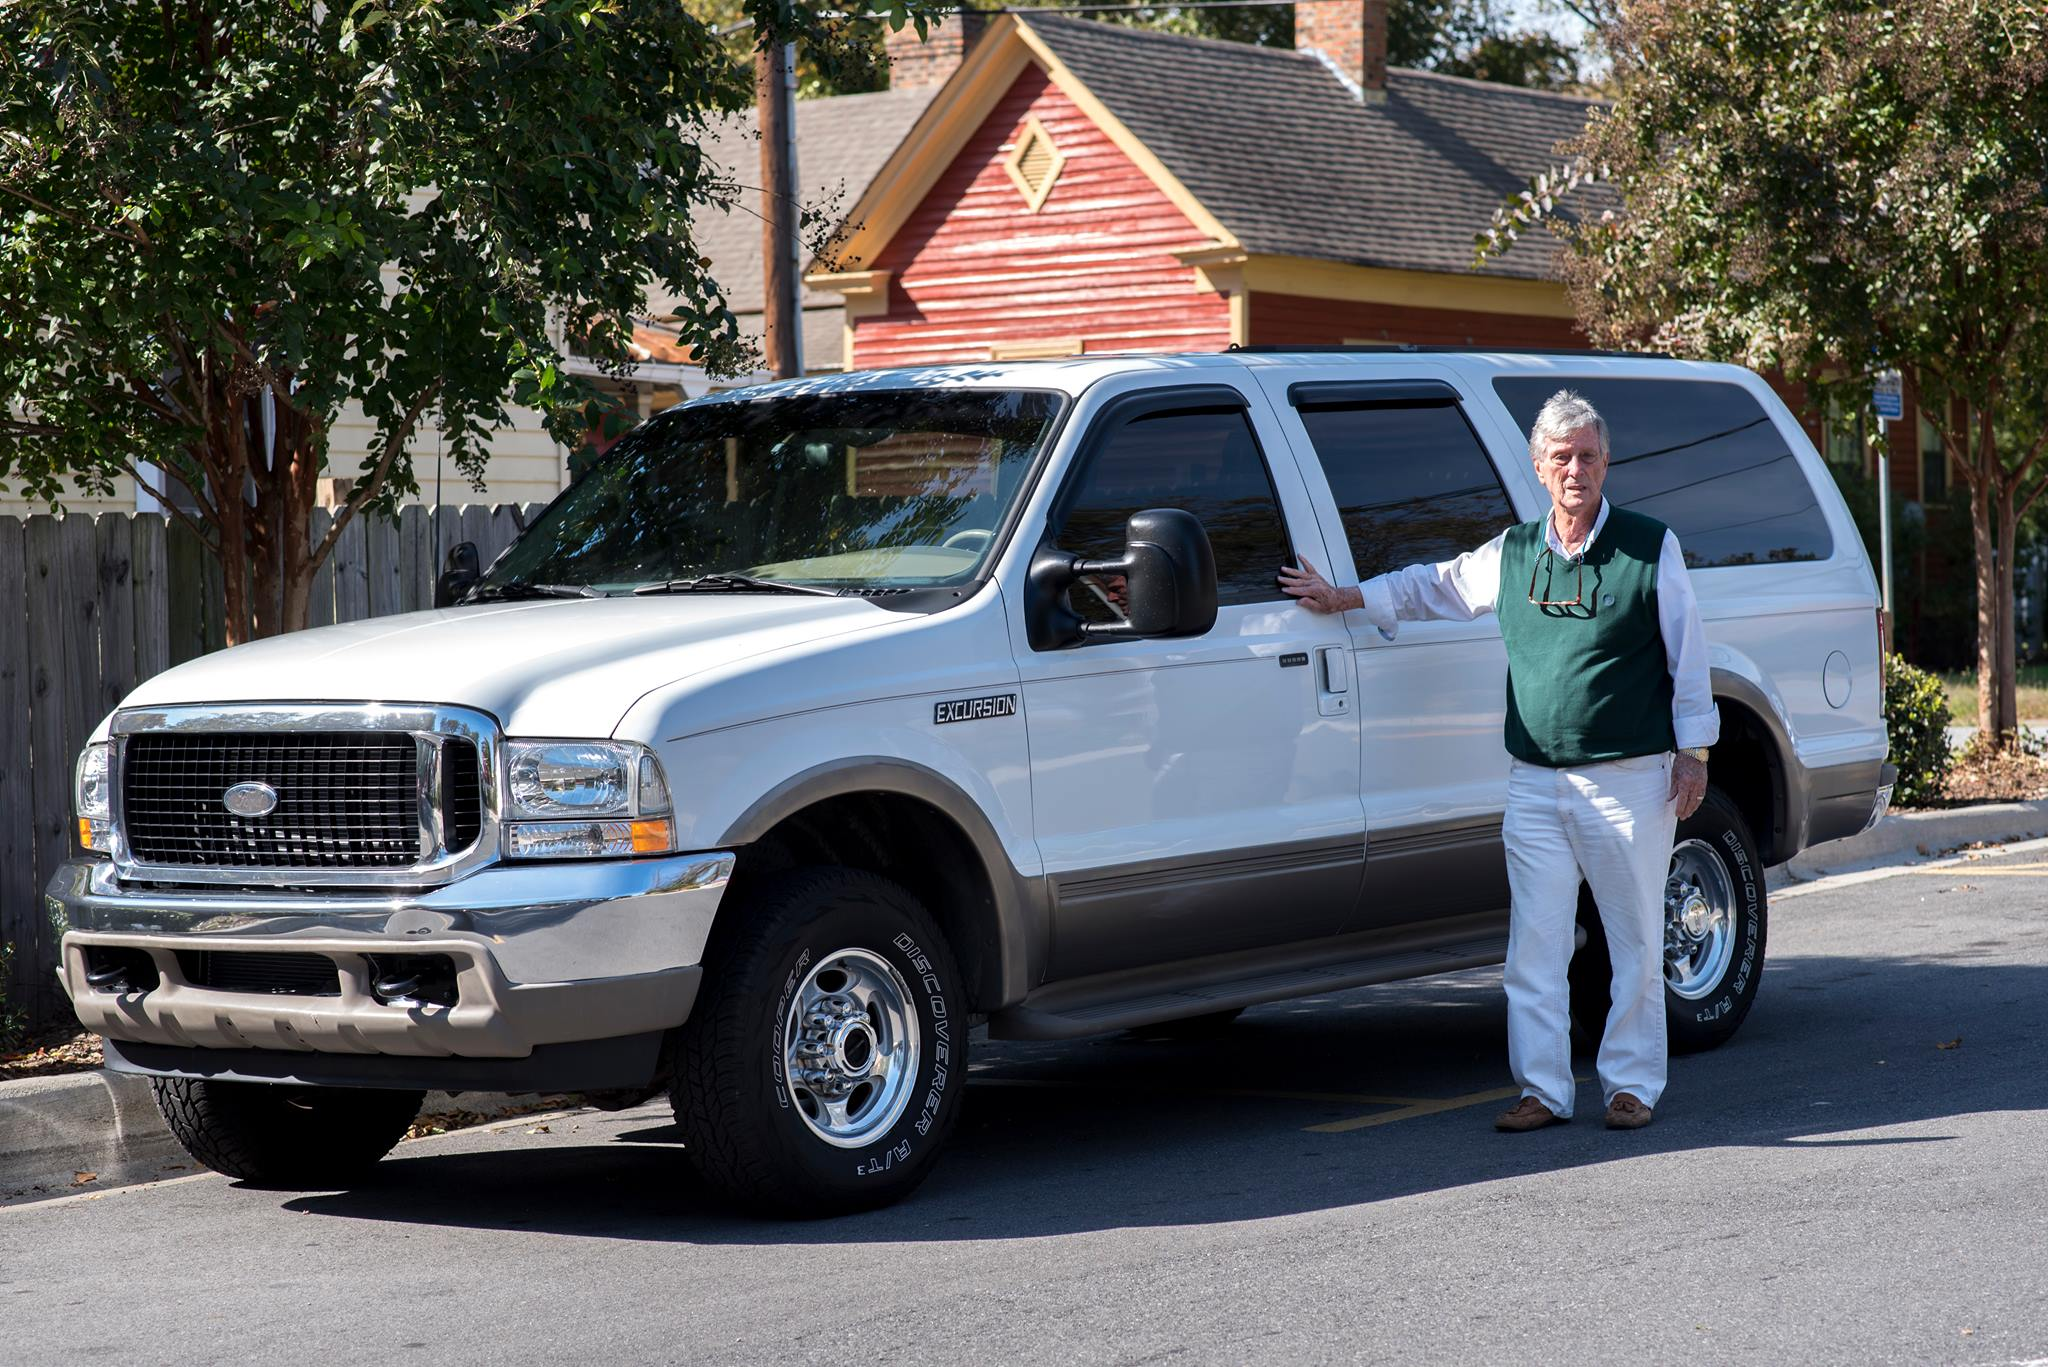 2003 Ford Excursion Used SUV in Sarasota, FL